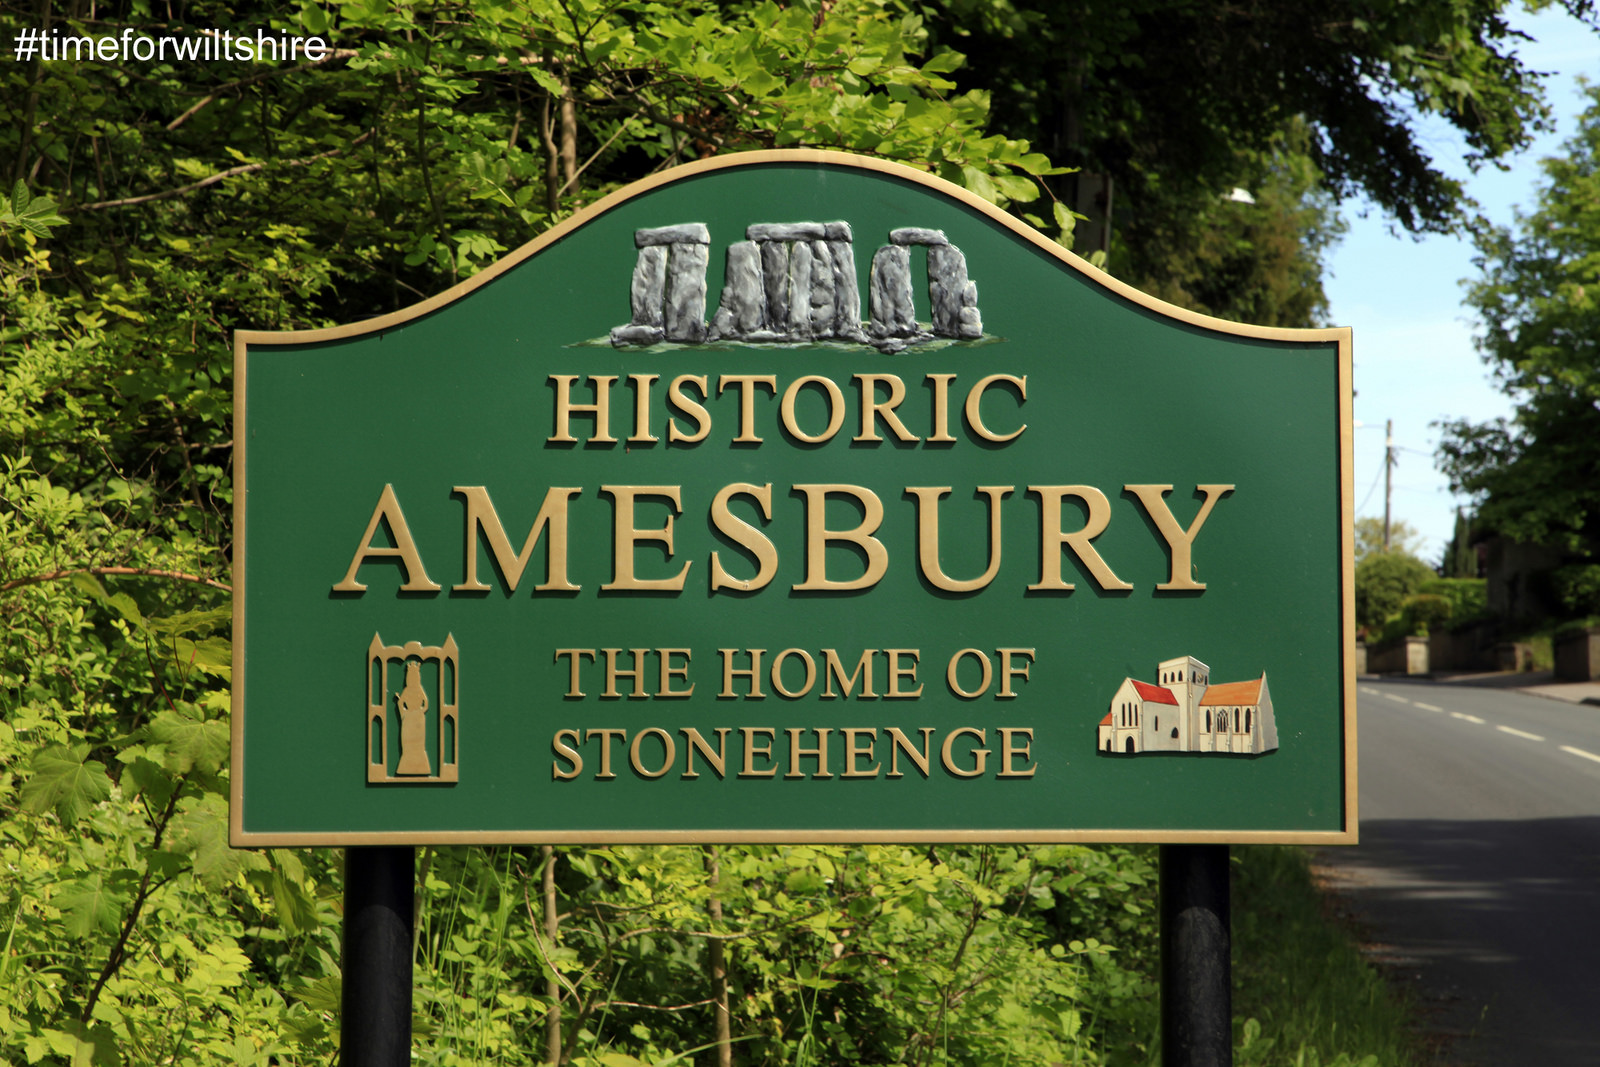 The town sign saying Historic Amesbury the home of Stoehenge © www.visitwiltshire.co.uk